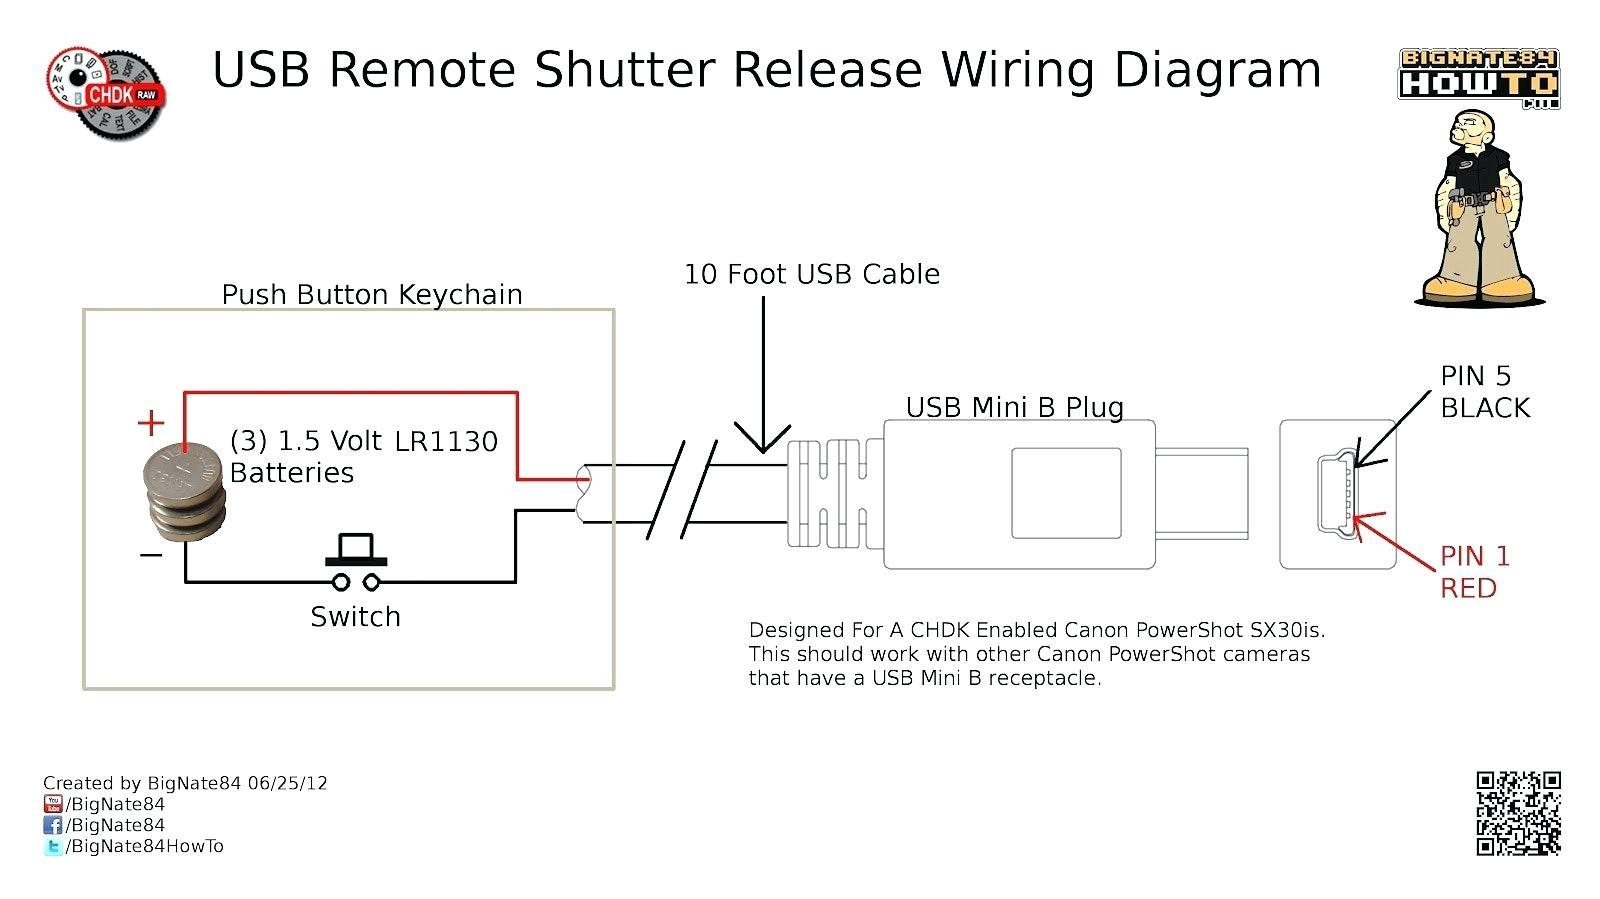 Usb Wiring Diagram Cable on usb color diagram, usb b diagram, usb cable pinout, usb wall charger amazon, usb cable switch, usb to ps 2 mouse wiring, usb to db9 wiring-diagram, usb 2.0 schematic, usb otg diagram, usb cable assembly, usb pinout diagram, usb cable cable, usb camera diagram, usb electrical diagram, usb to rca wiring-diagram, usb to serial wiring-diagram, usb cable drawing, usb connections diagram, usb cable types, usb 2.0 cable diagram,